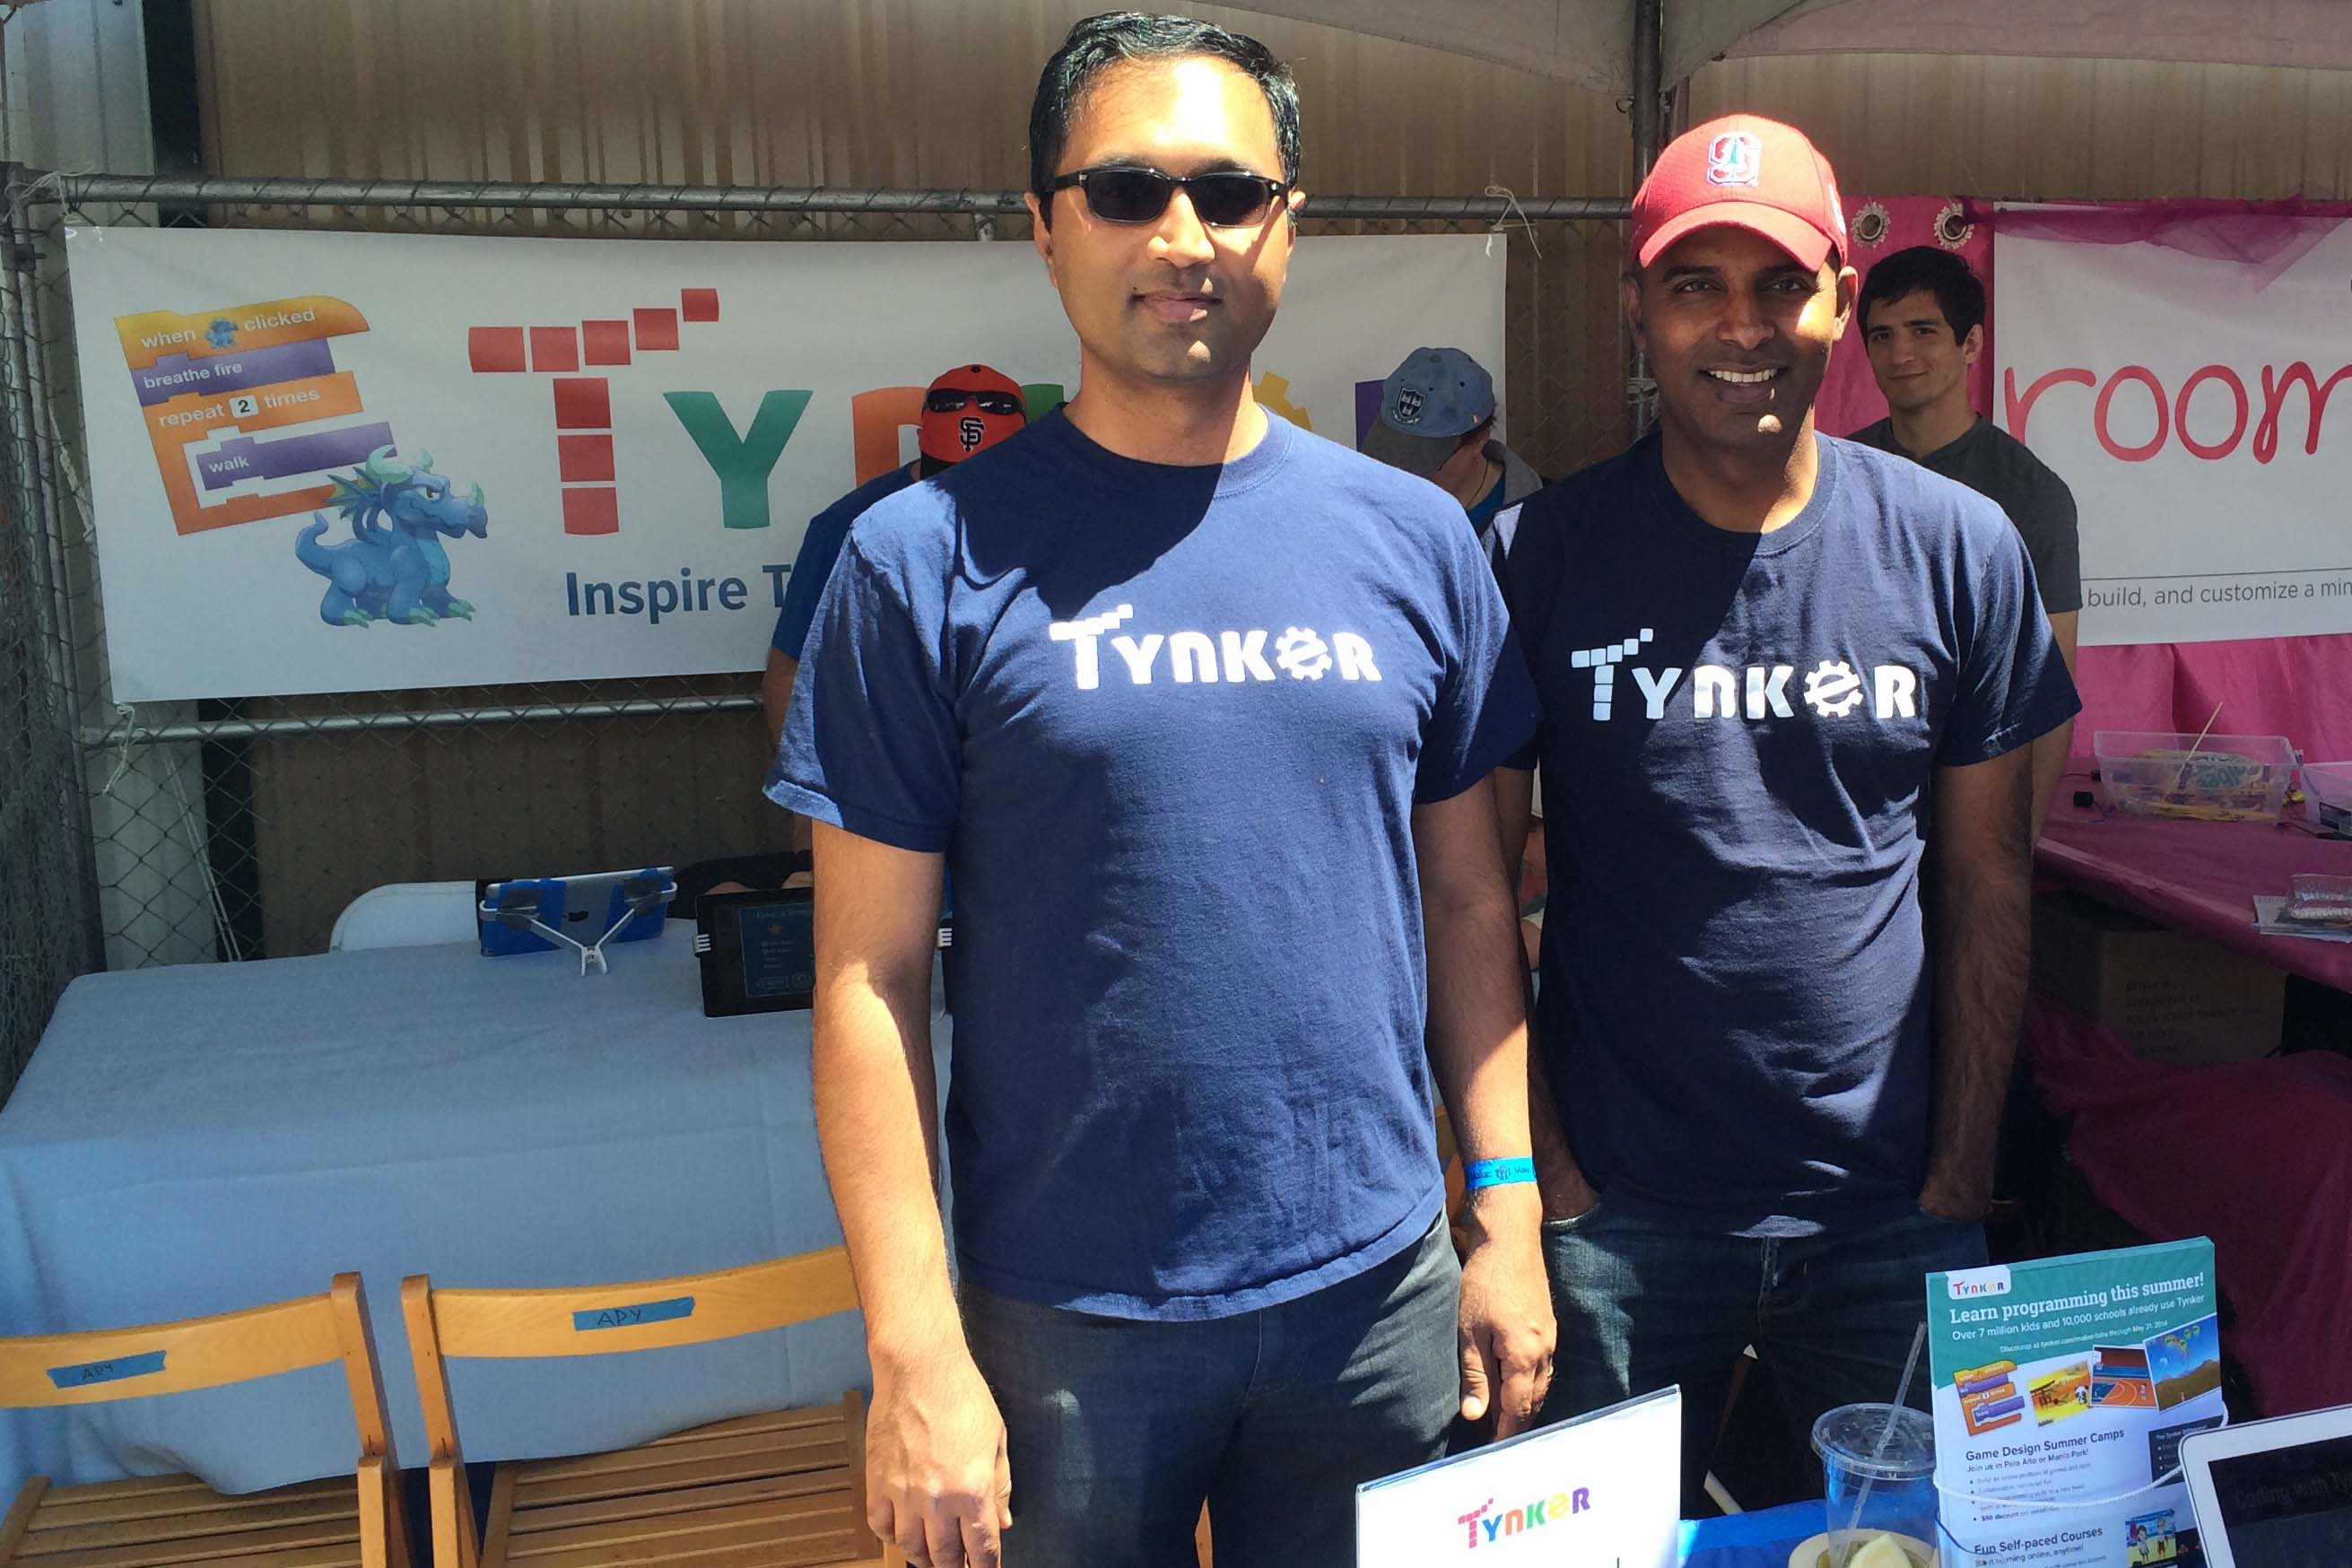 Tynker at the Bay Area Maker Faire